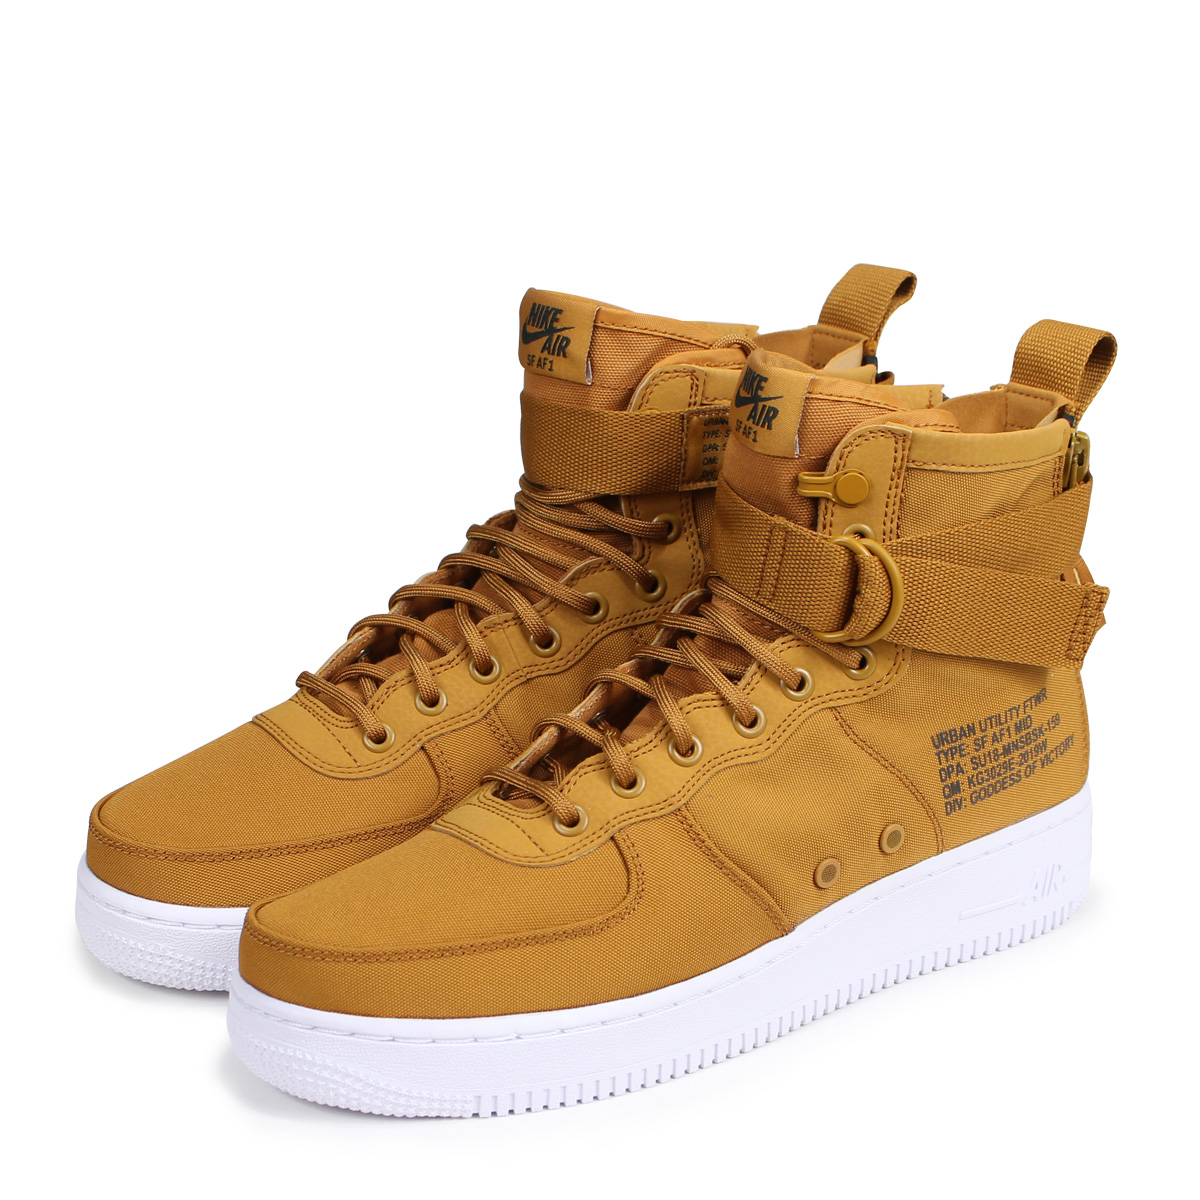 buy popular d3d42 e4ad3 NIKE SPECIAL FIELD AIR FORCE 1 MID Nike air force 1 sneakers men special  field 917,753-700 SF AF1 brown [load planned Shinnyu load in reservation ...